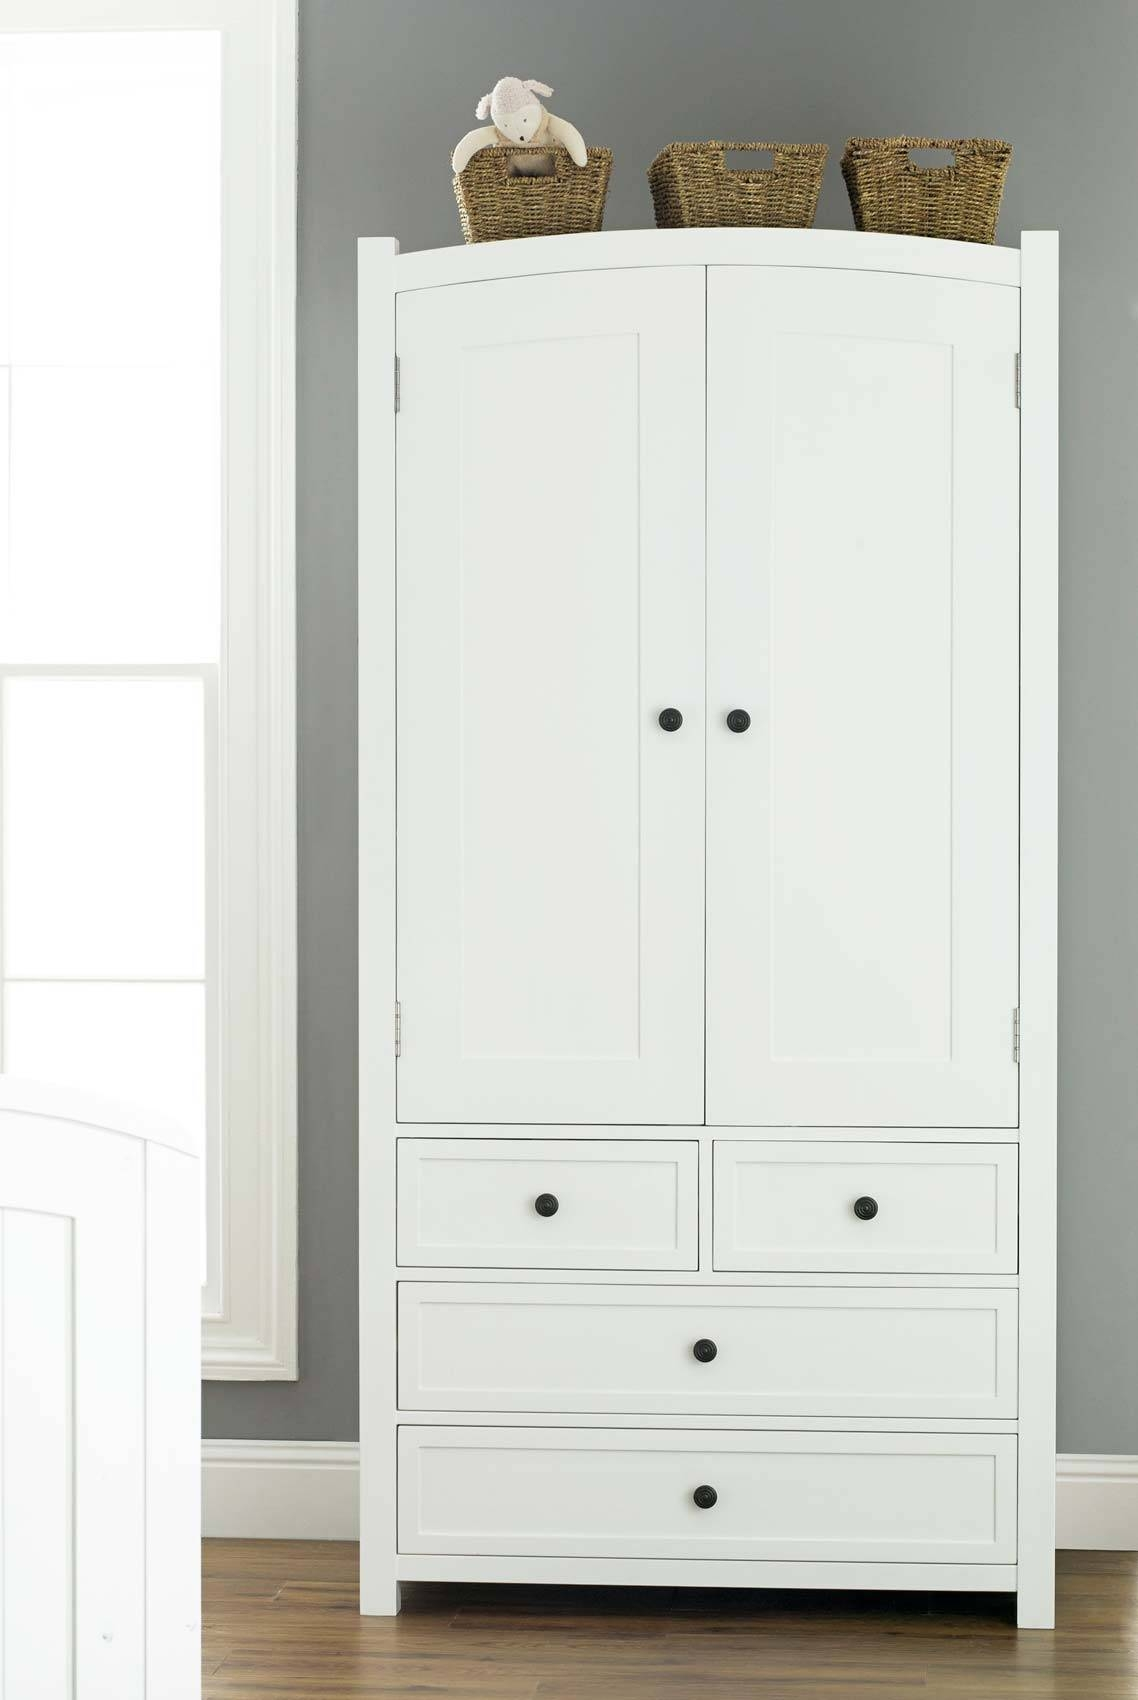 Flawless White Wooden Kids Wardrobe With Drawers And Brown Wicker for Double Wardrobe With Drawers and Shelves (Image 14 of 30)